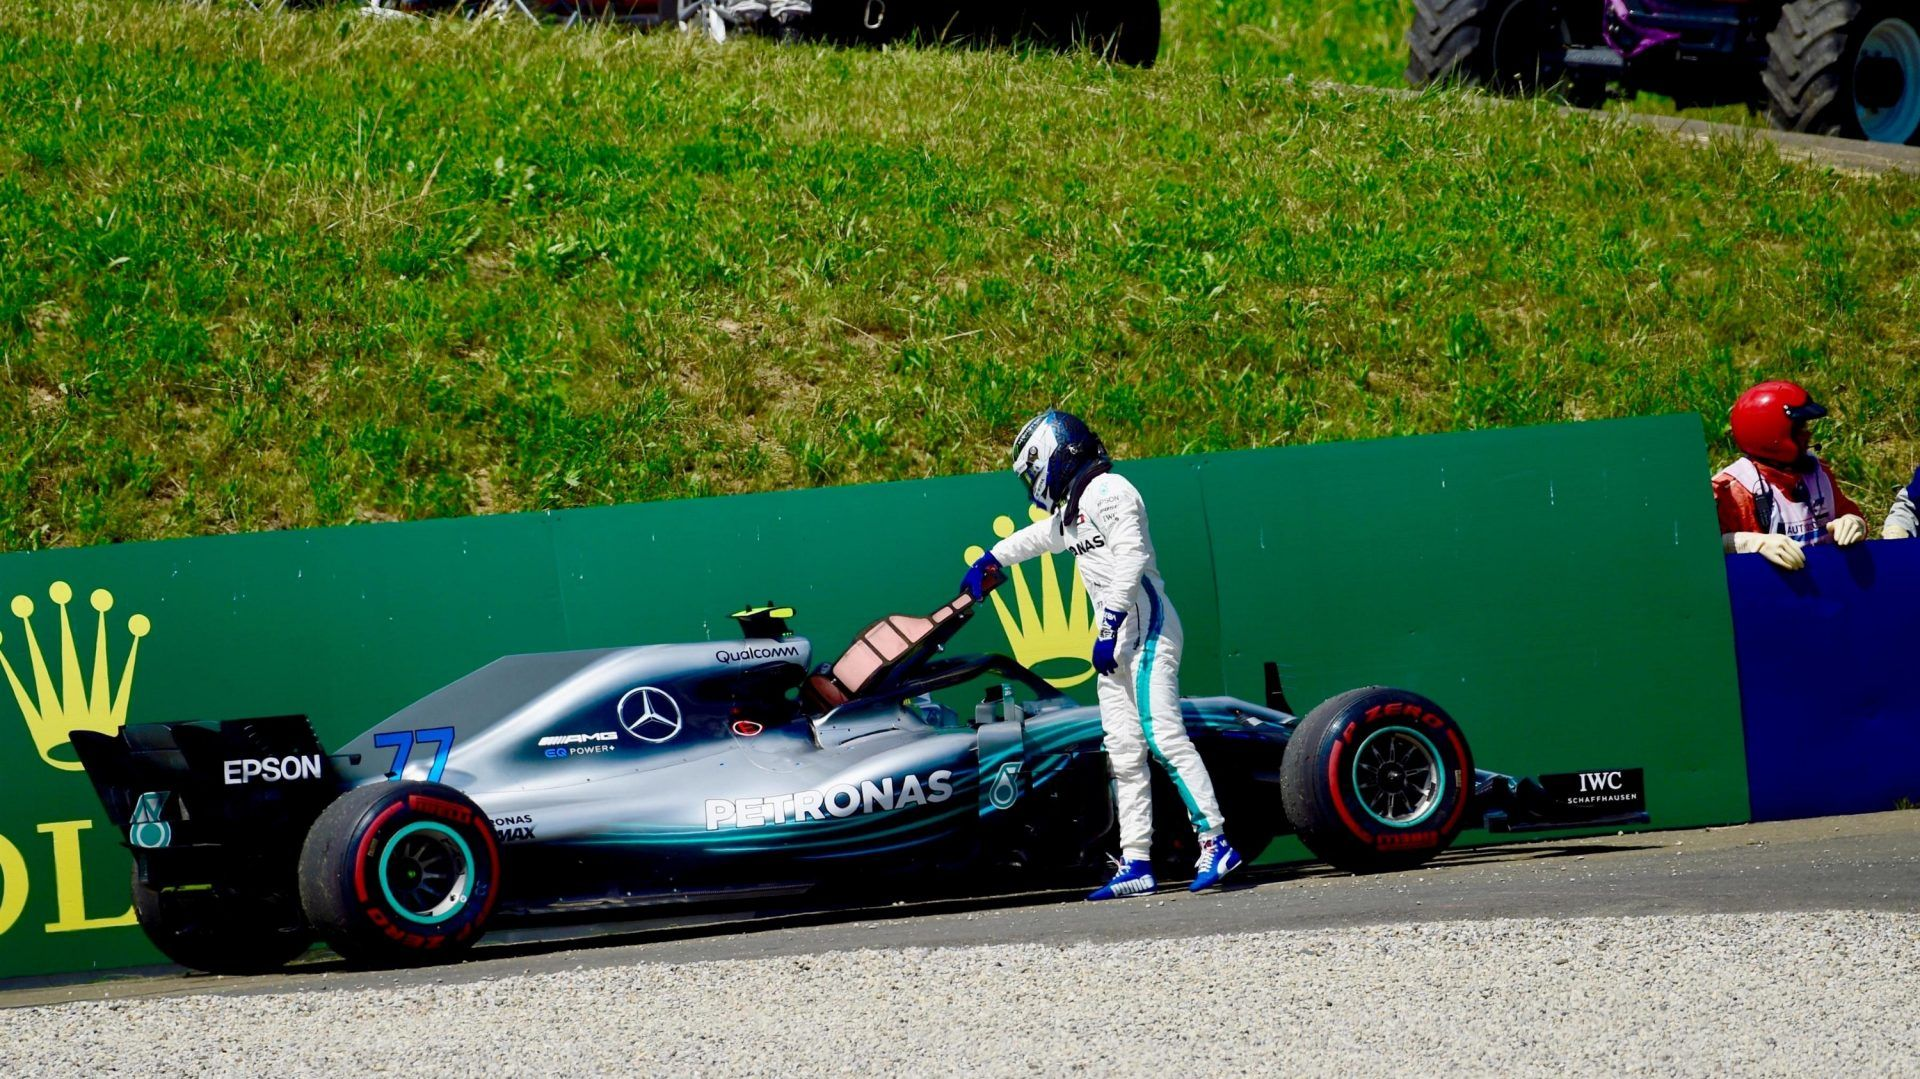 Mercedes: Austria DNFs not related to recent performance